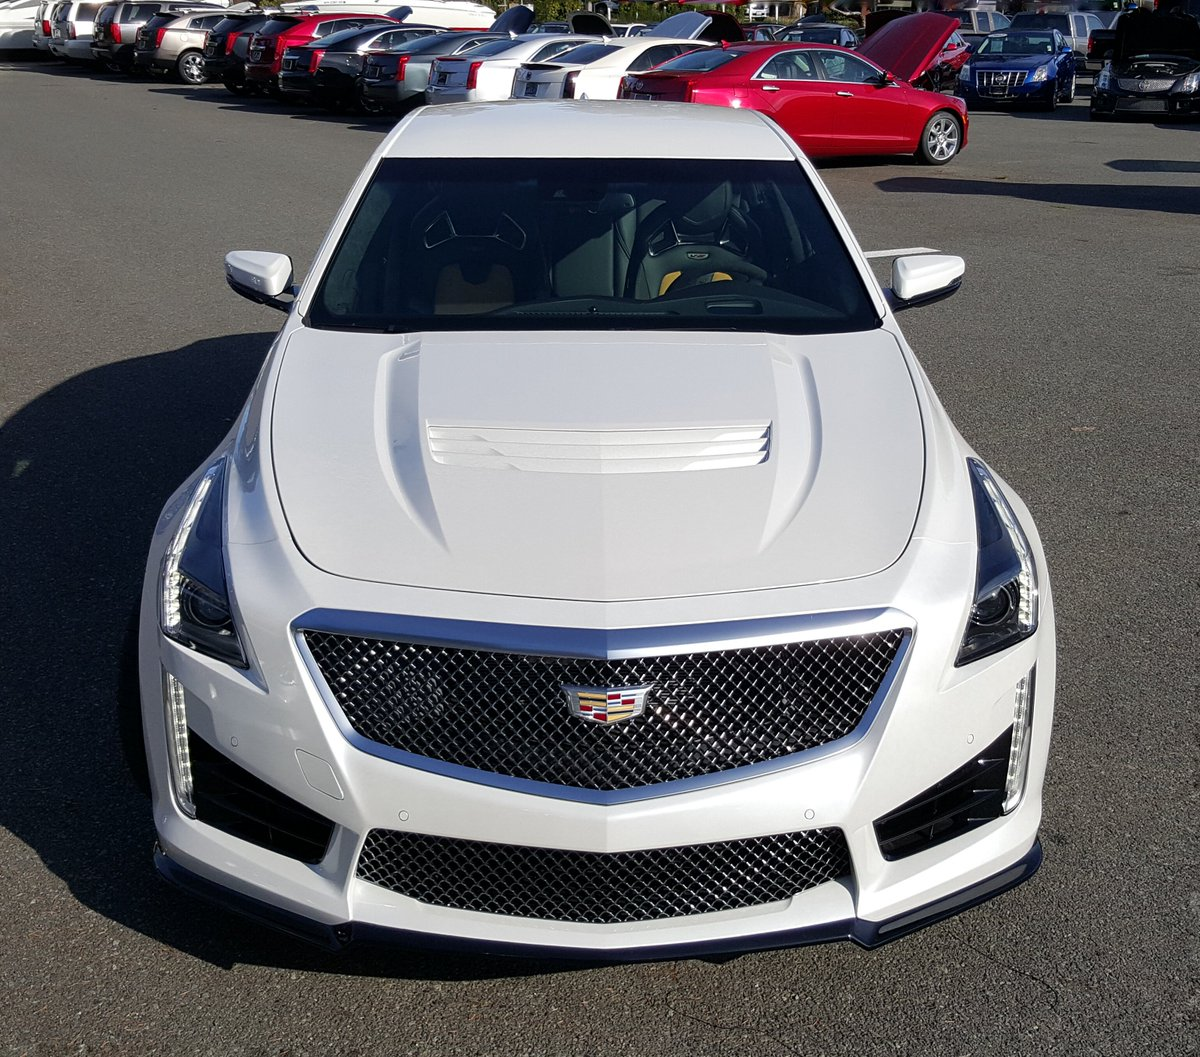 doug s nw cadillac on twitter just got the first 2016 cadillac cts v 640 hp and 200 mph top speed this is the fastest car gm has ever produced https t co vzjwbmkrzr cadillac cts v 640 hp and 200 mph